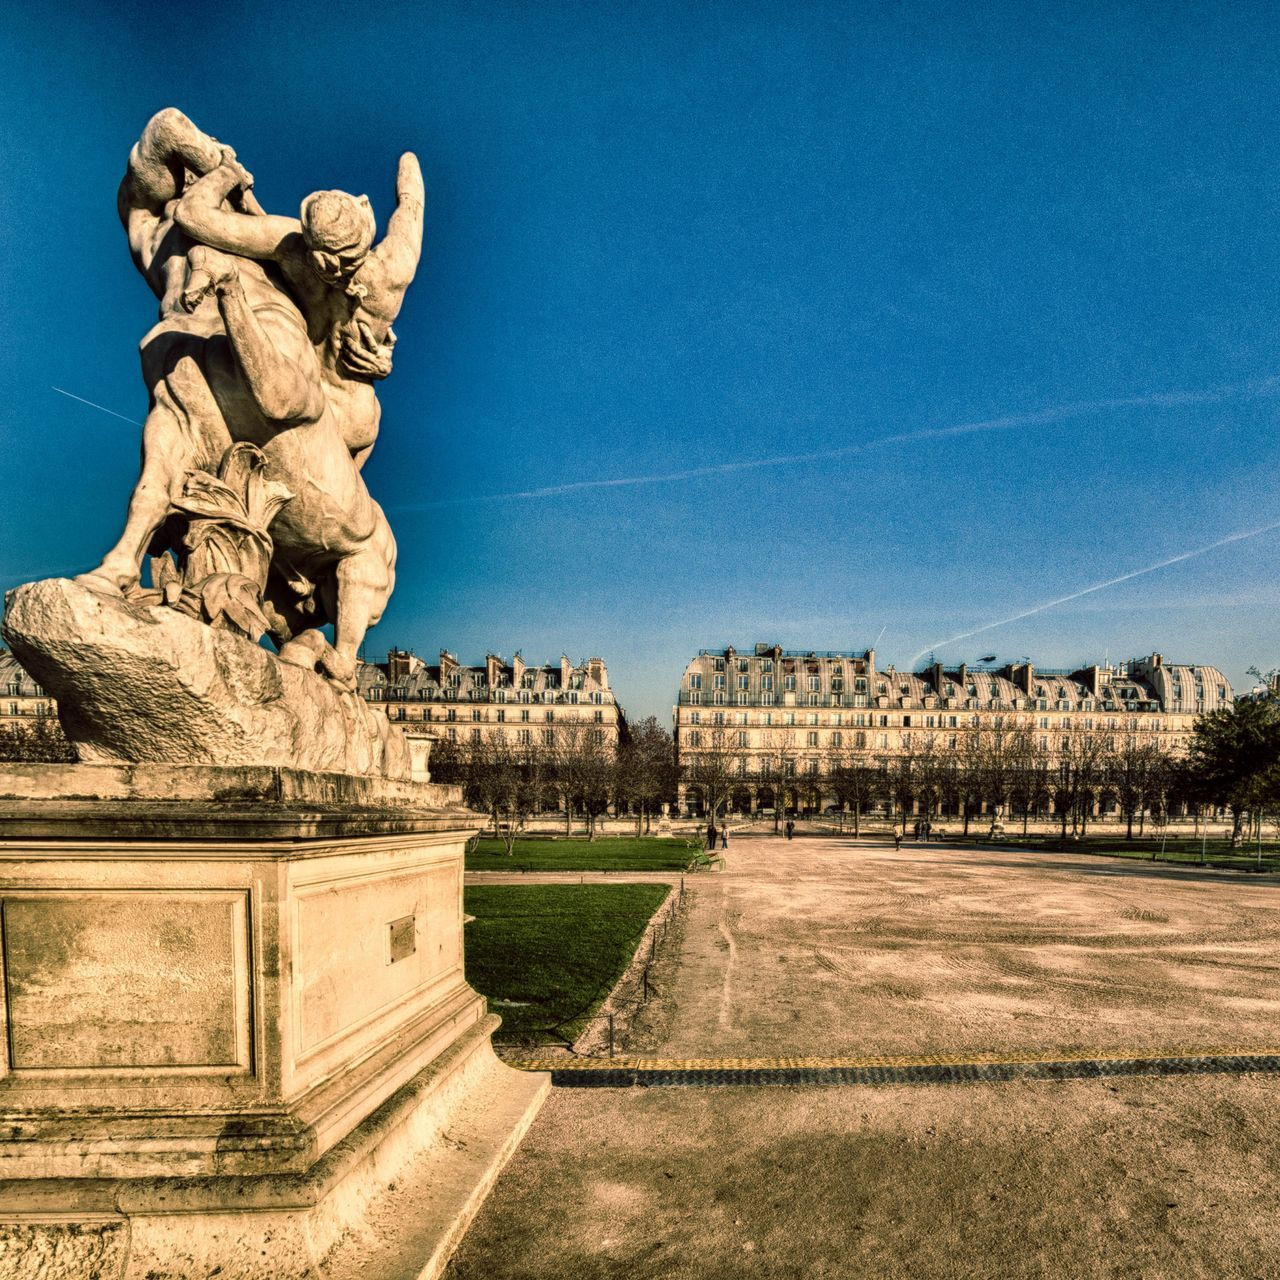 statue, sculpture, outdoors, architecture, building exterior, built structure, day, history, no people, sky, blue, tree